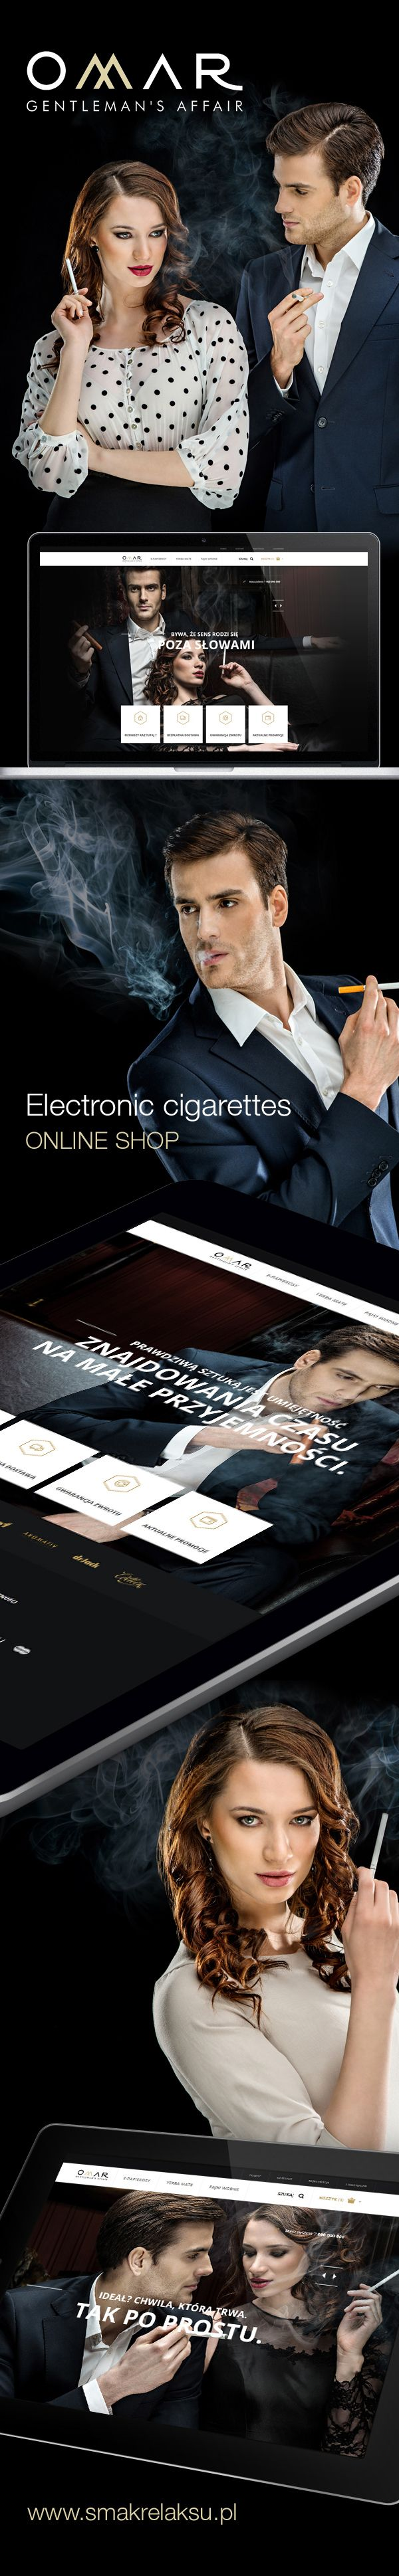 Omar Online Shop by www.pixelpr.net, via Behance